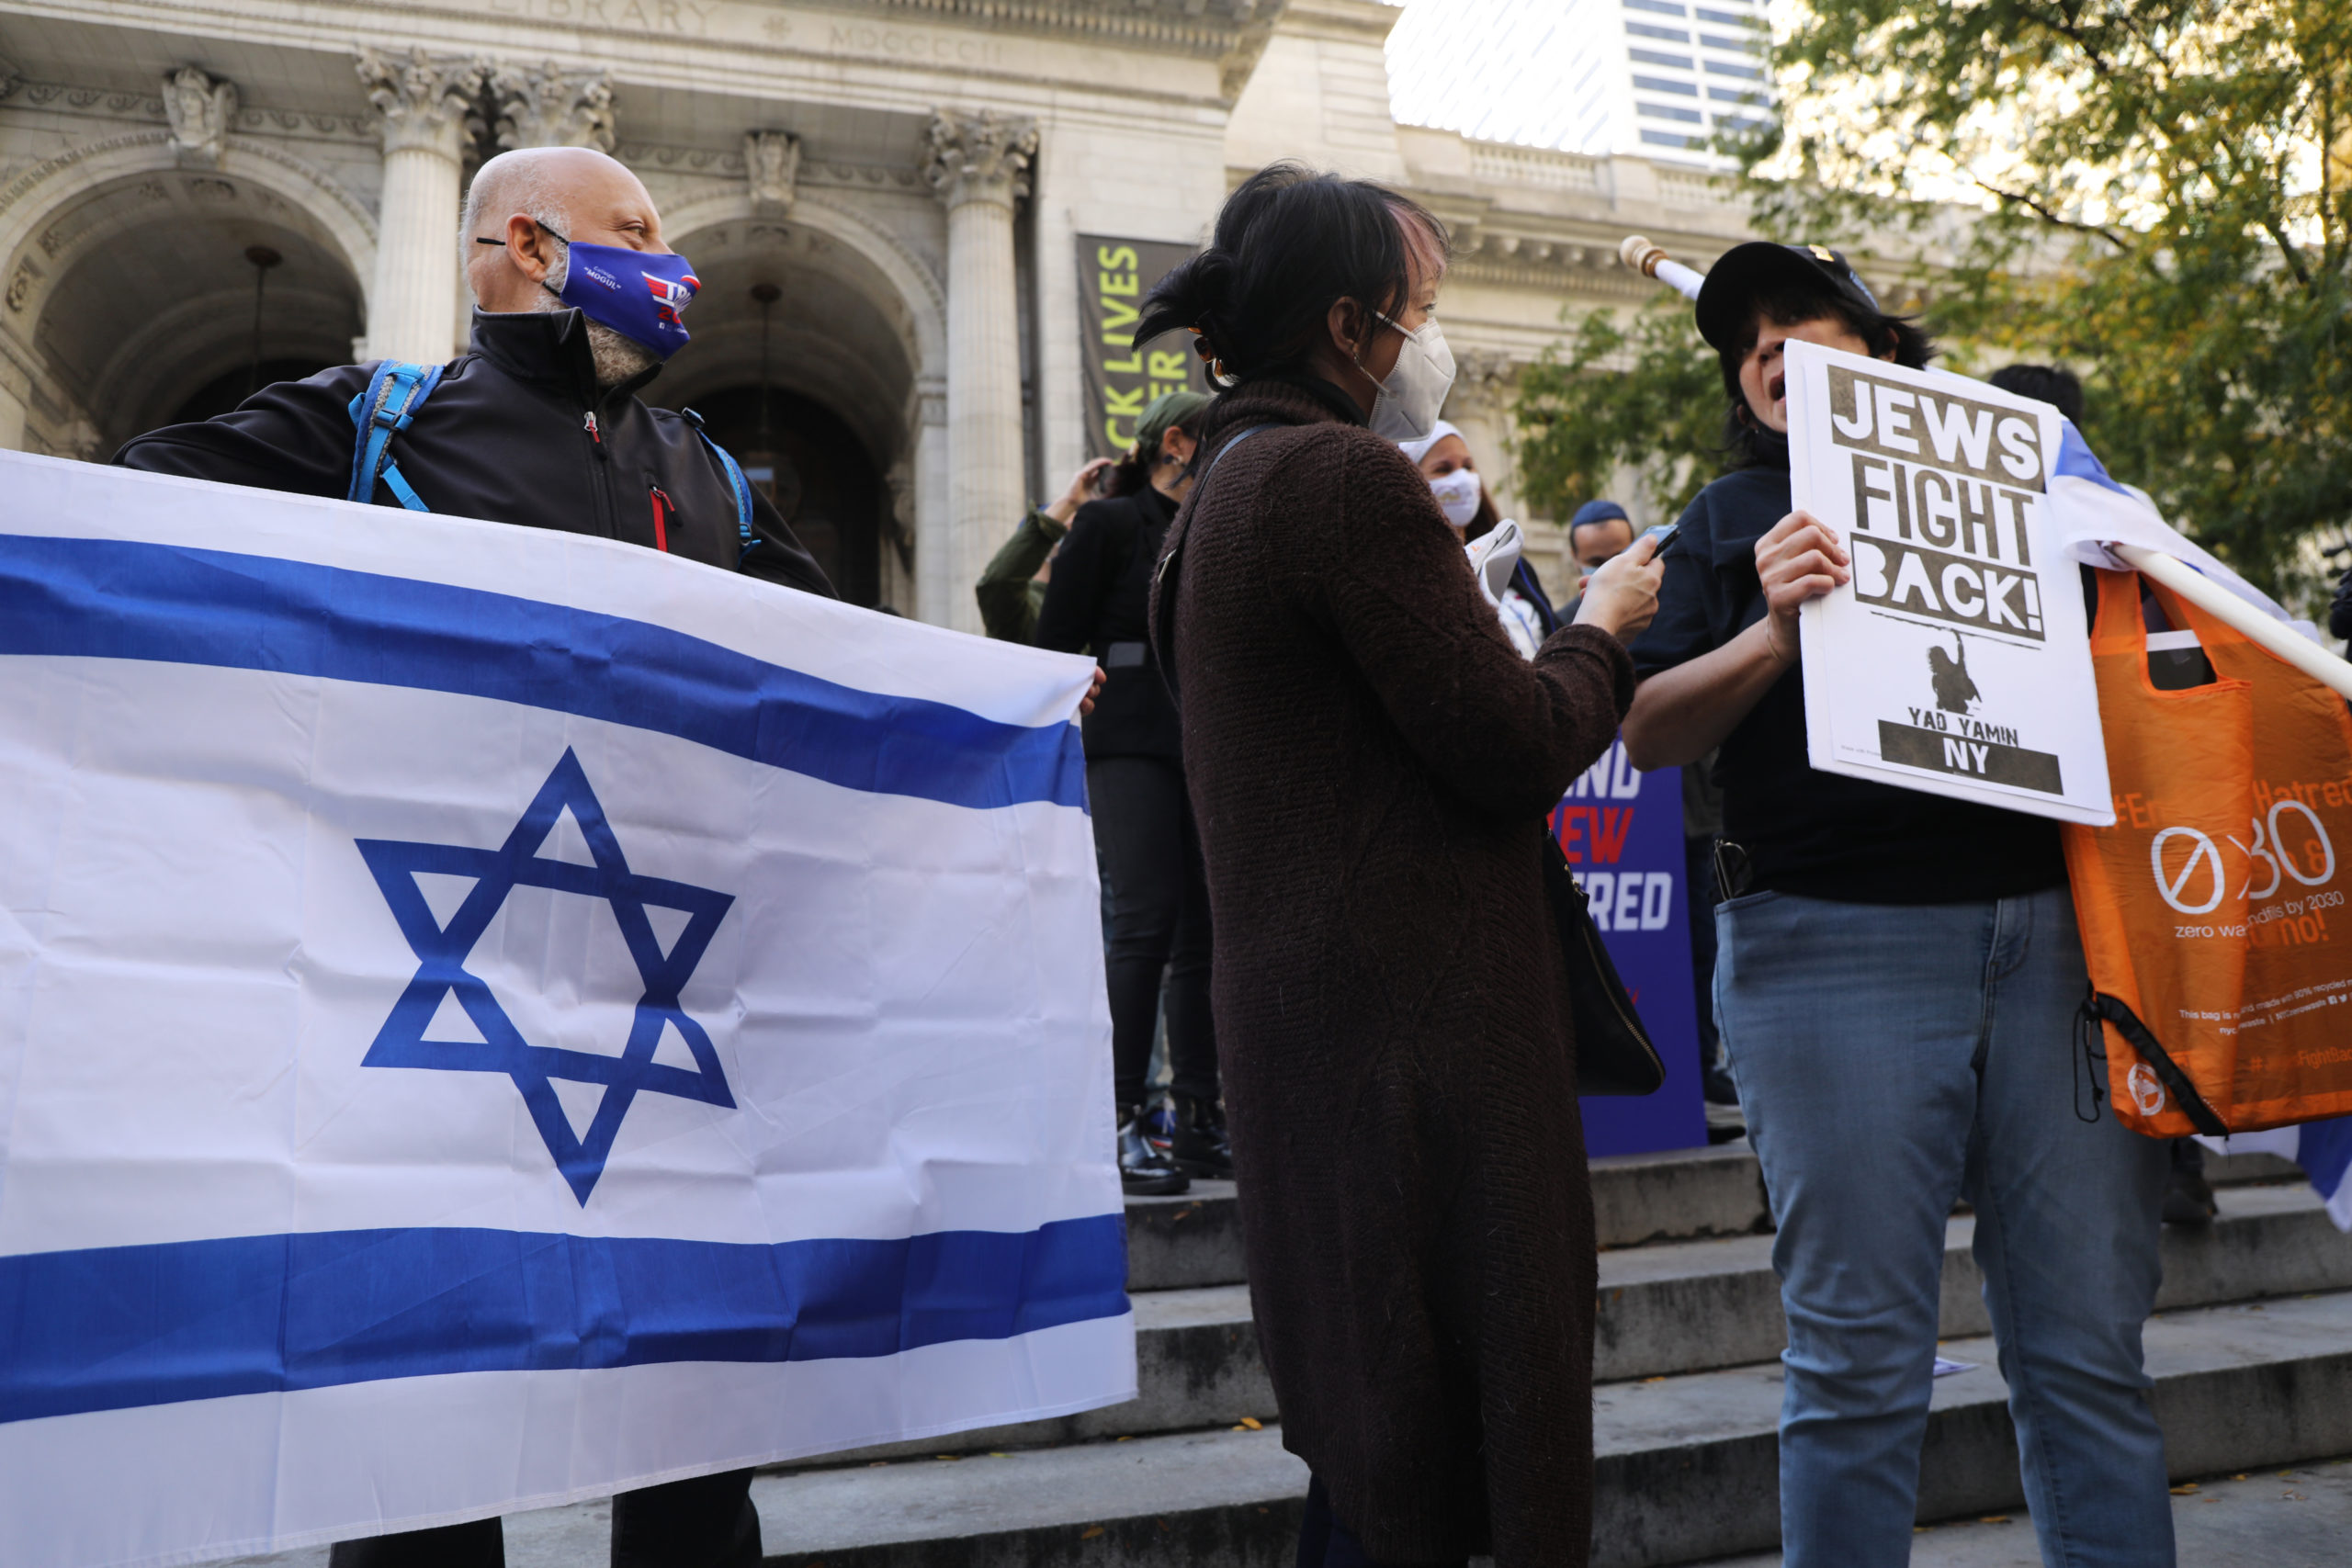 NEW YORK, NEW YORK - OCTOBER 15: Protesters rally in Manhattan against the closing of some schools and businesses in Jewish neighborhoods in the Brooklyn and Queens boroughs due to a spike in the numbers of Covid-19 cases in these neighborhoods on October 15, 2020 in New York City. One of the neighborhoods, Borough Park in Brooklyn, is home to one of the largest Orthodox Jewish communities in the country and has witnessed a rising number of COVID-19 cases. The neighborhoods have had issues with authorities in limiting large funerals and weddings. New York City Mayor Bill de Blasio and Governor Andrew Cuomo have closed nonessential businesses and schools in nine neighborhoods where positive COVID-19 rates have been higher than 3 percent. (Photo by Spencer Platt/Getty Images)